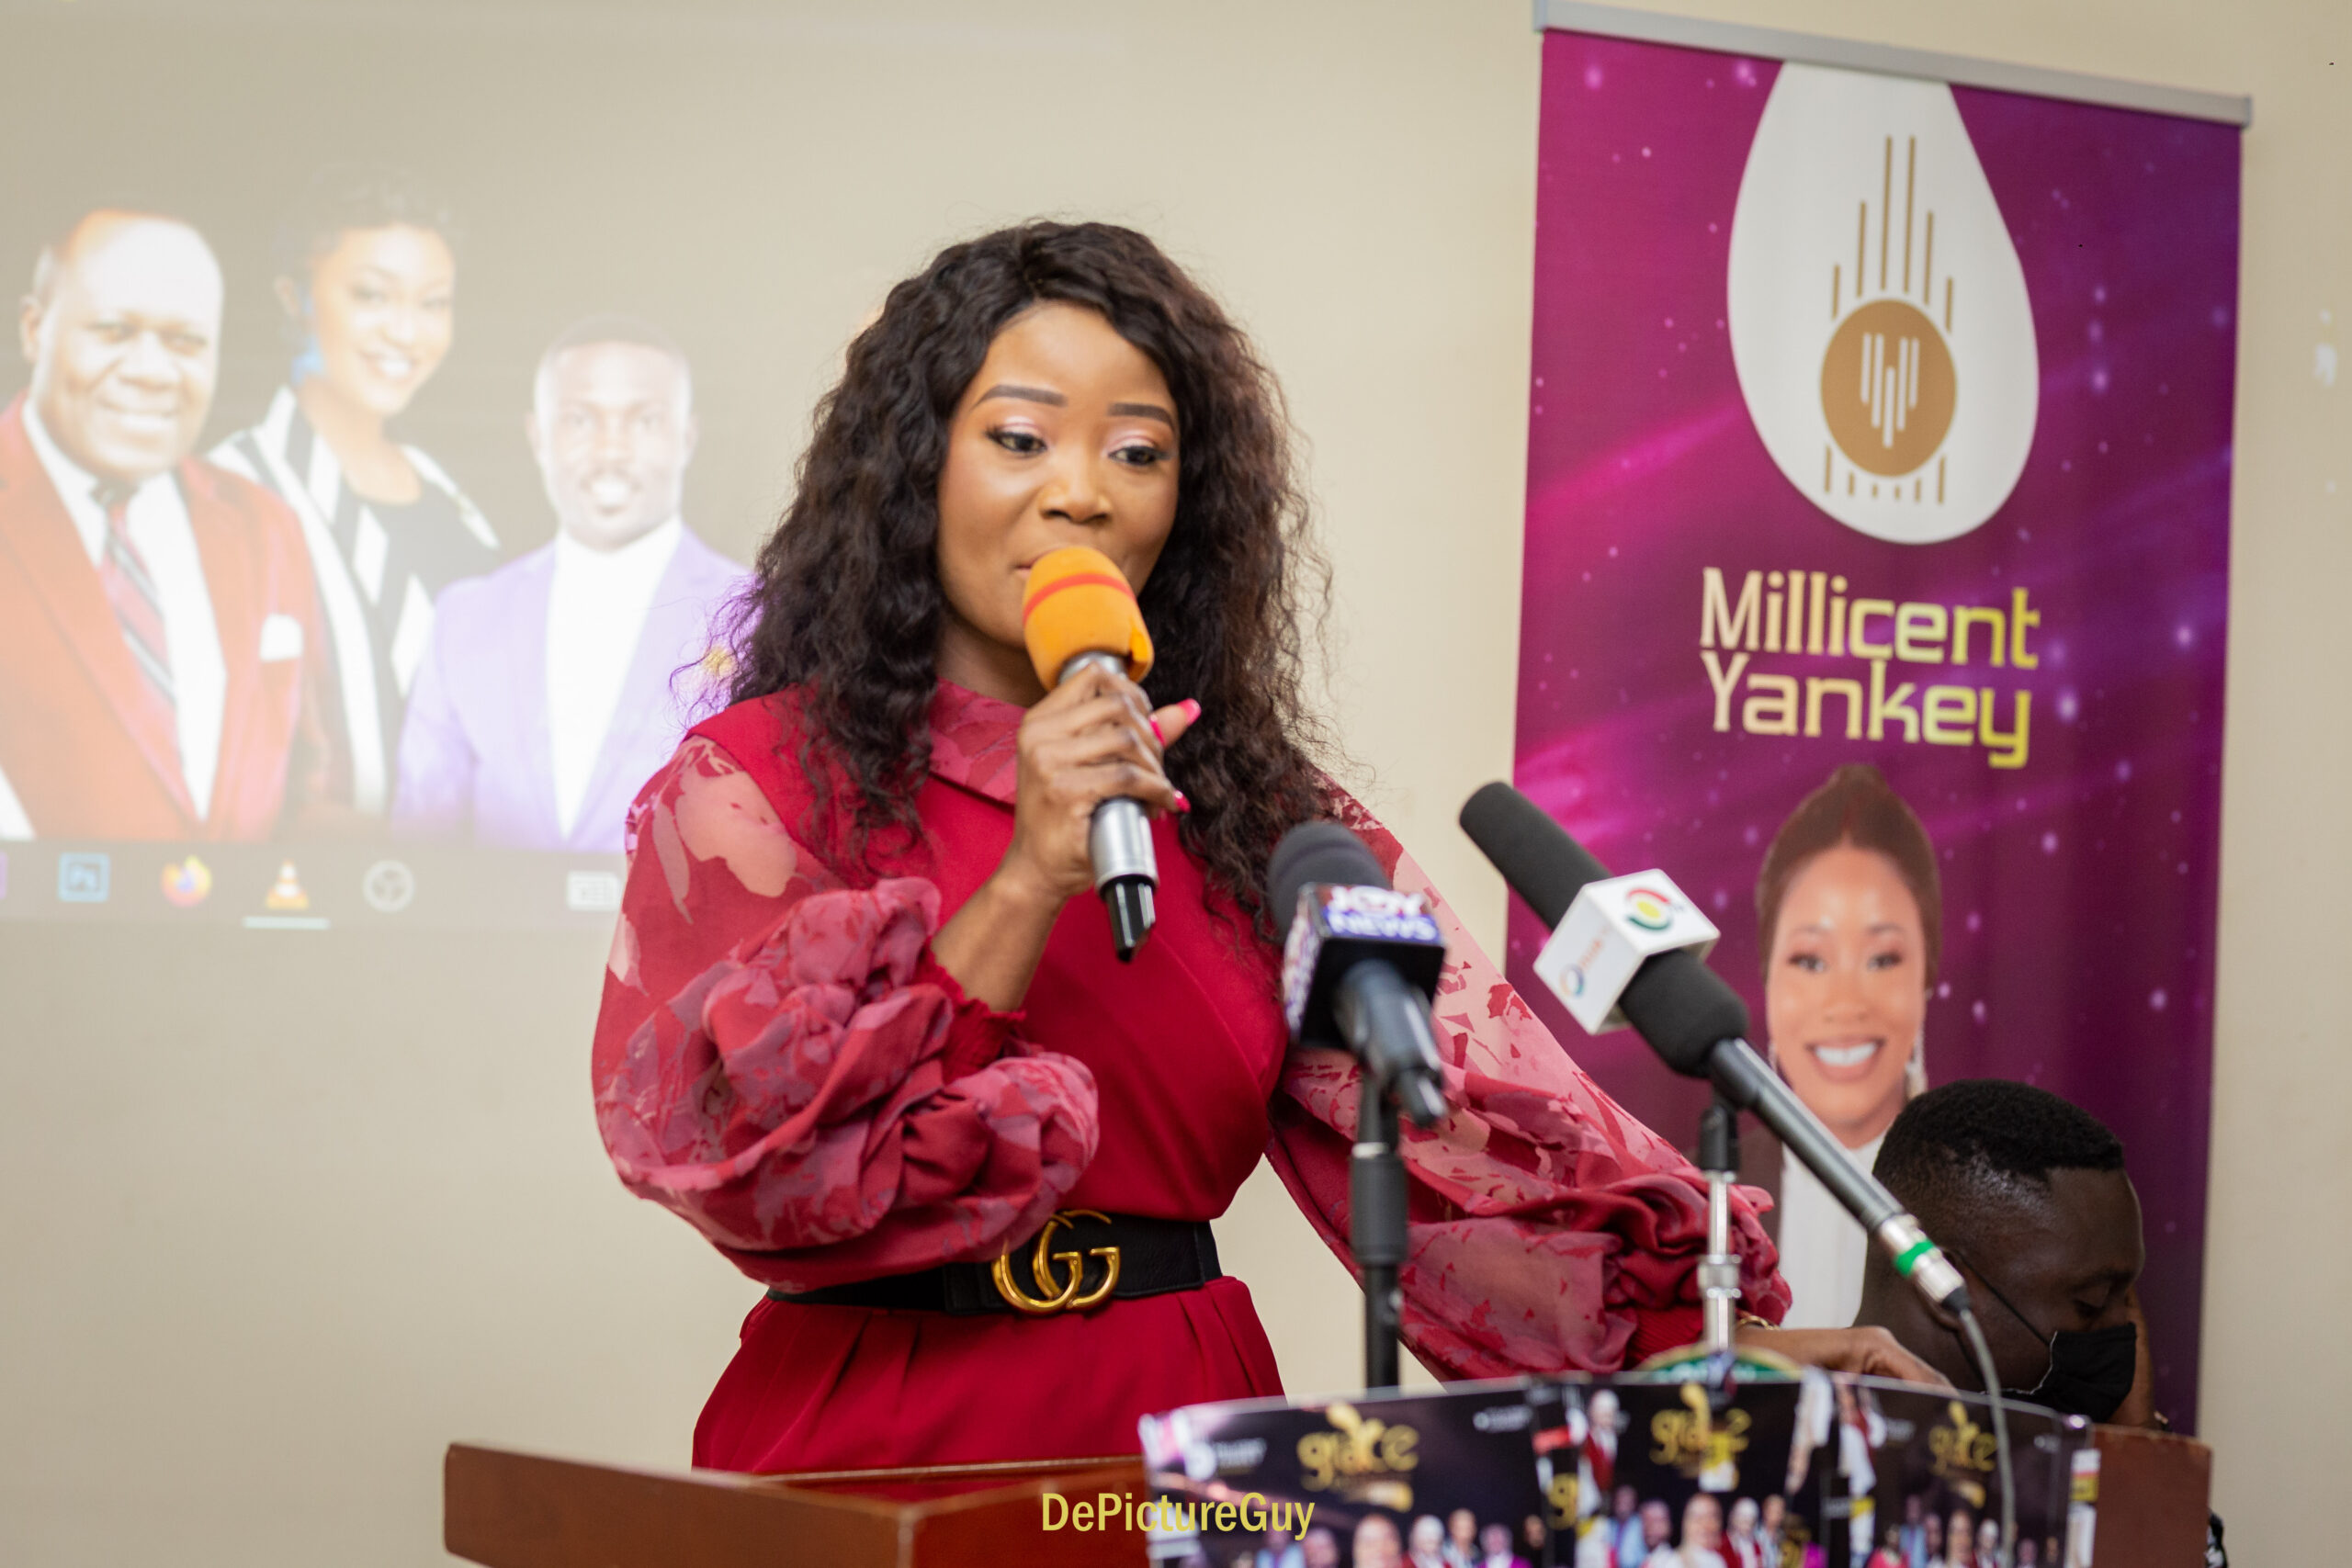 Photos: Millicent Yankey 's Grace Experience Officially Launched